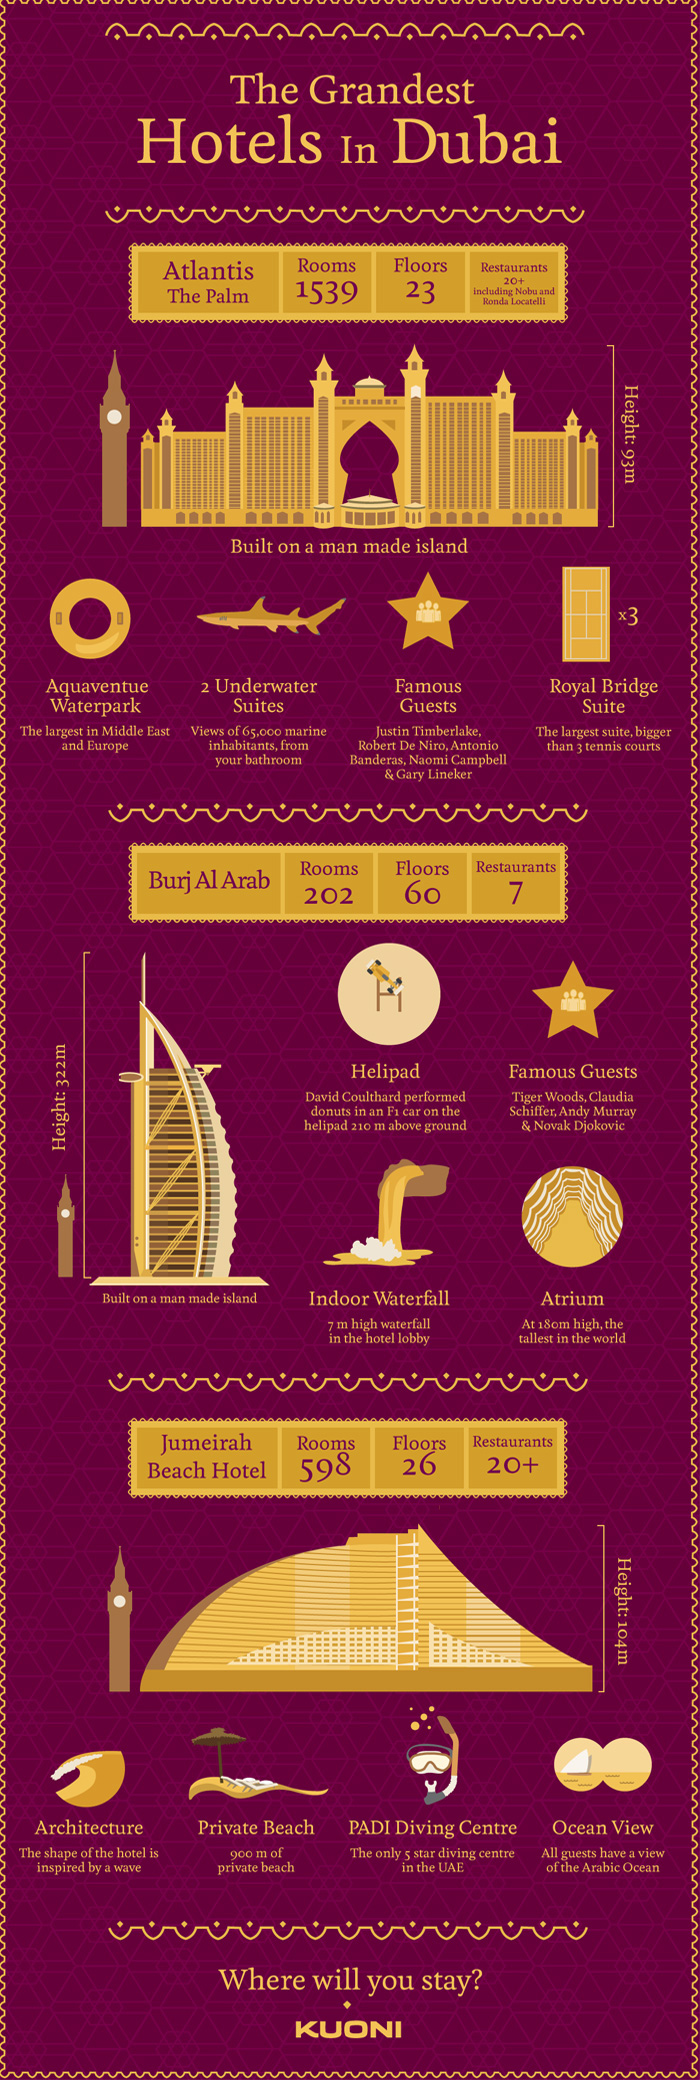 The Grandest Hotels of Dubai